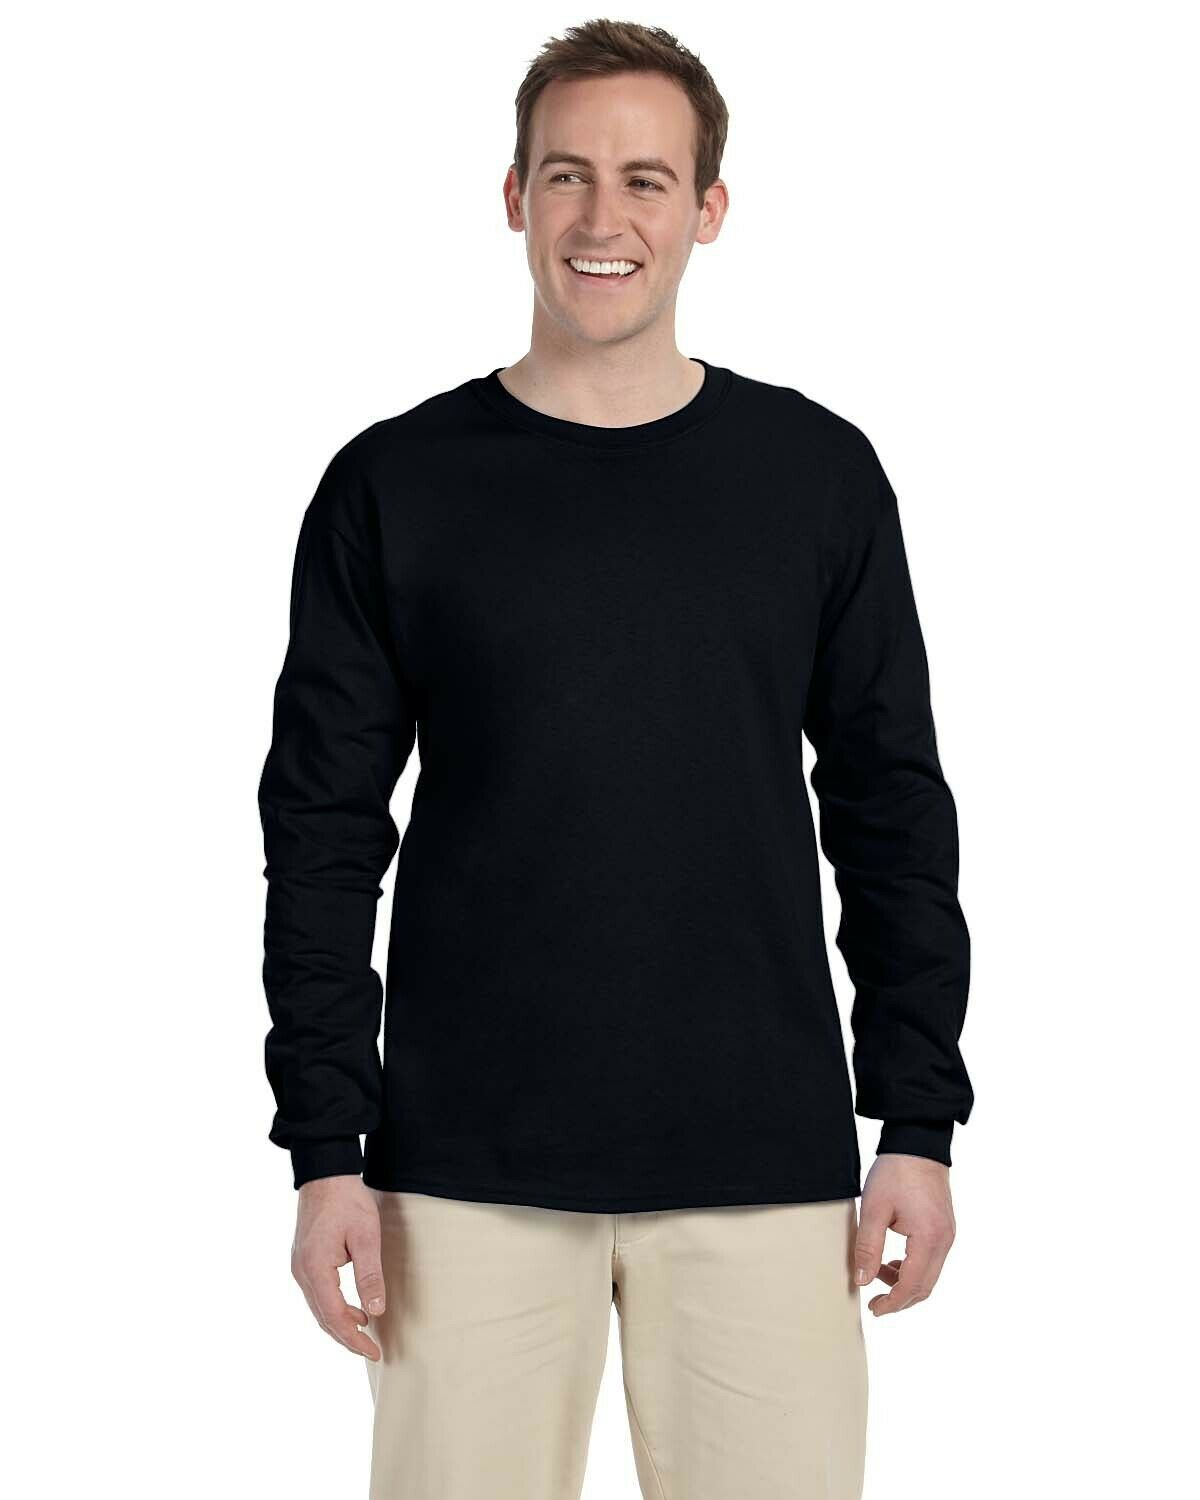 Long Sleeve 100/% Combed Cotton Four Colours Snickers 2402 T-Shirt